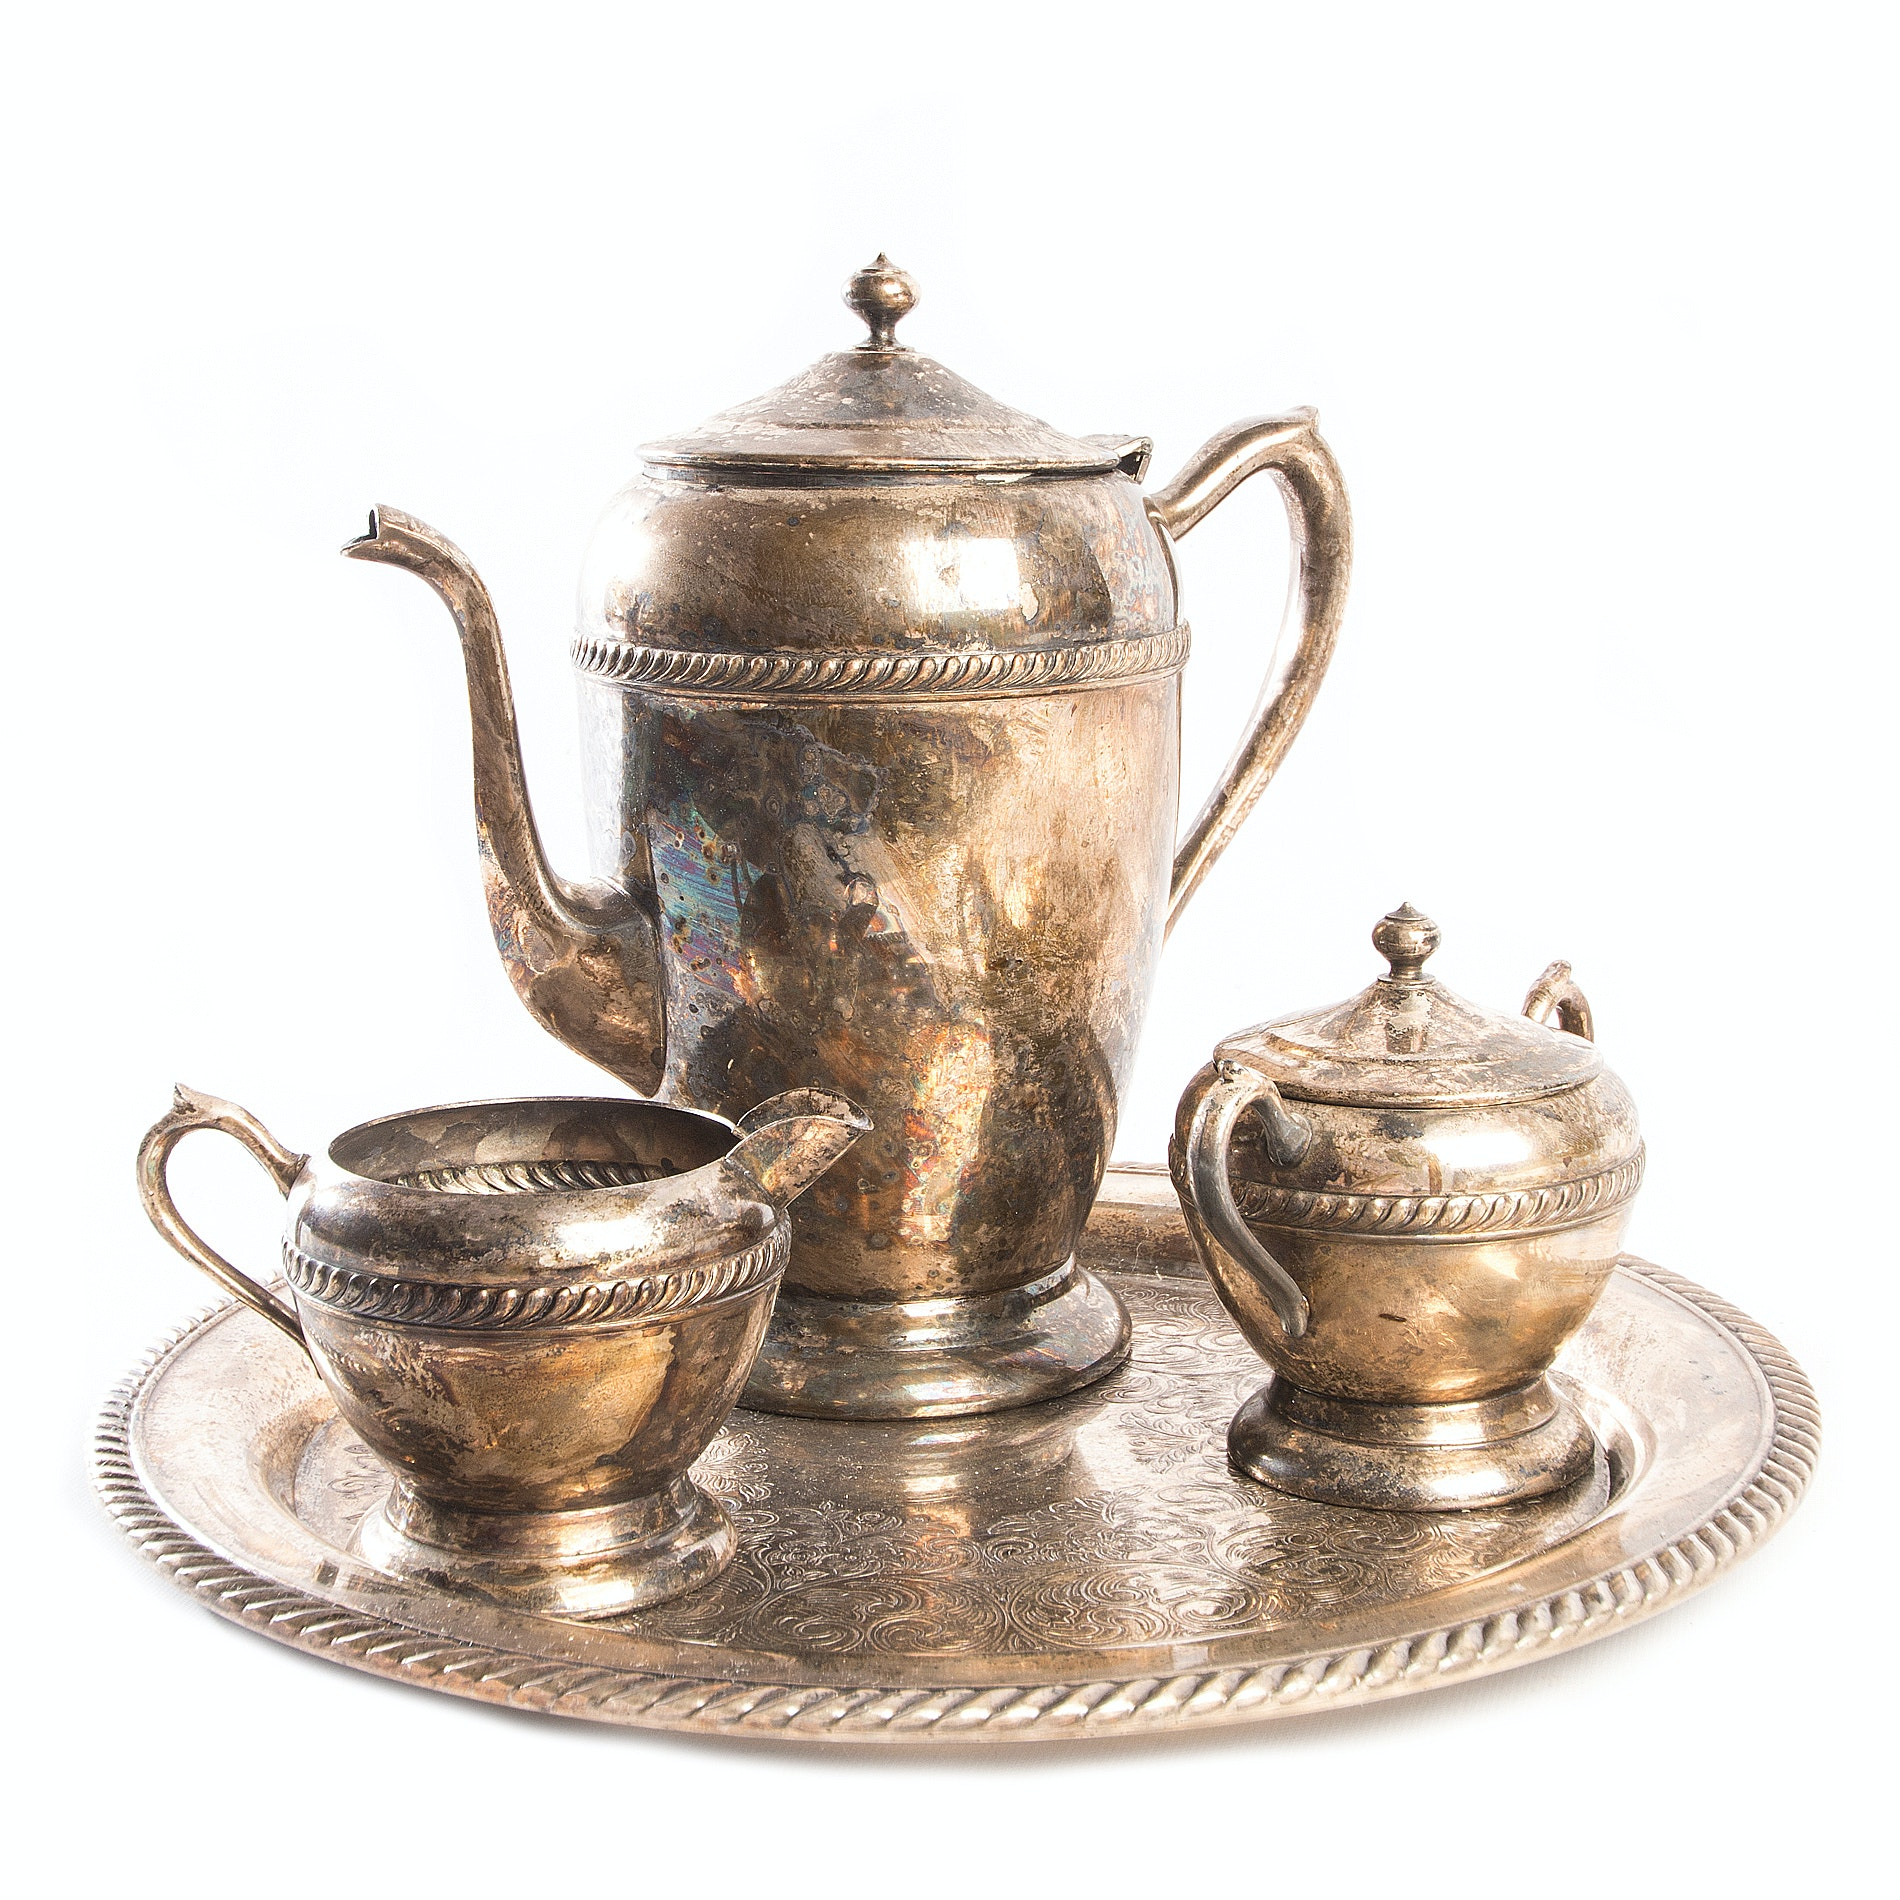 Vintage Plated Silver Coffee Set by F.B. Rogers